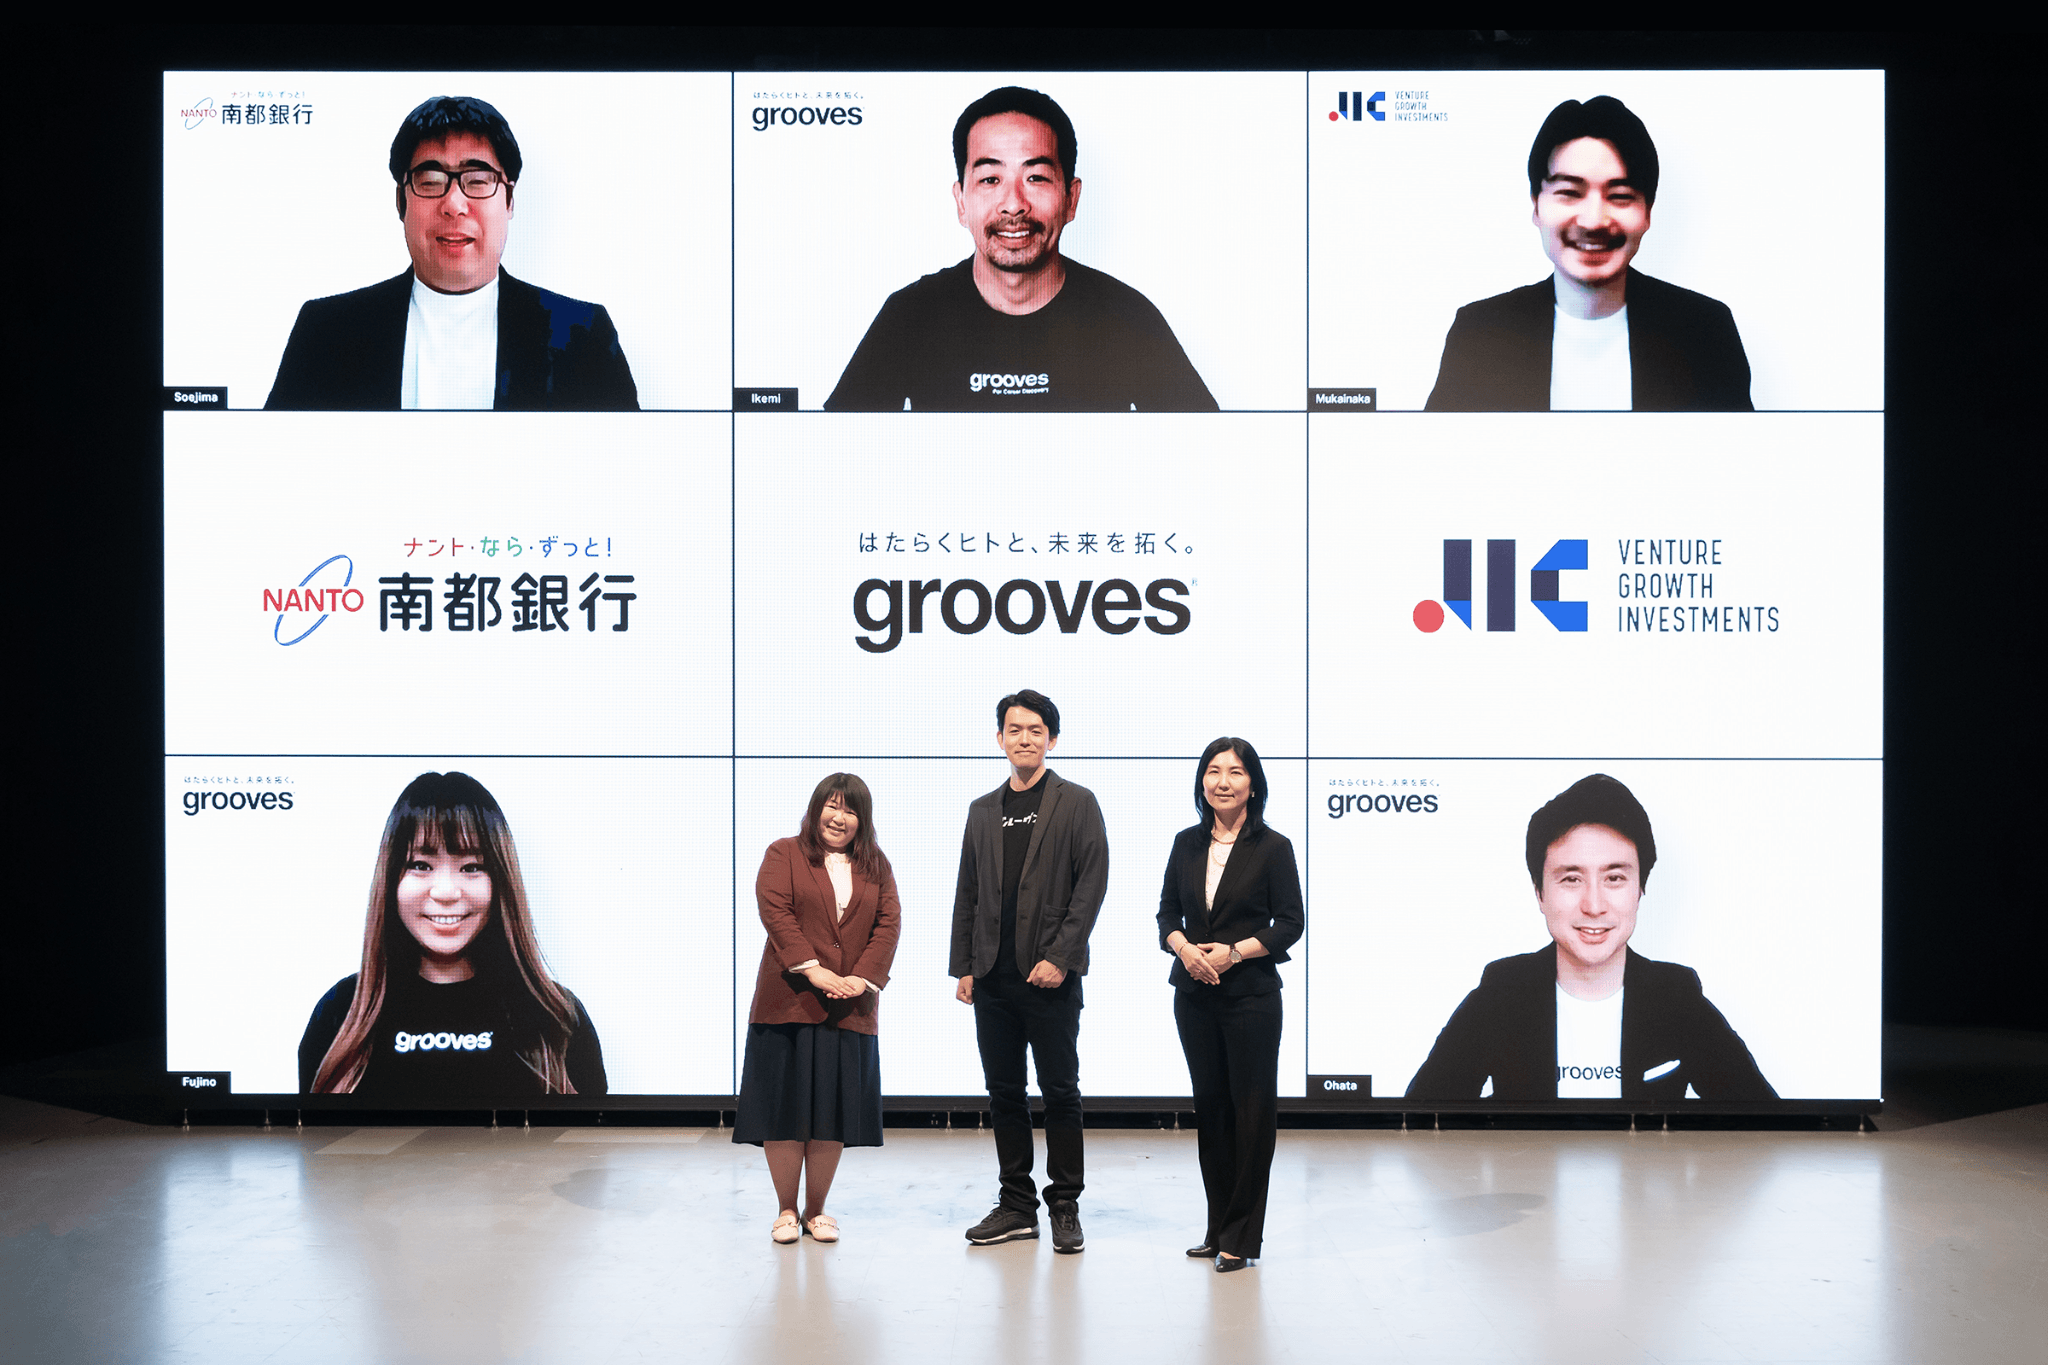 Japanese HR tech startup Grooves secures $7.3m in latest fundraise